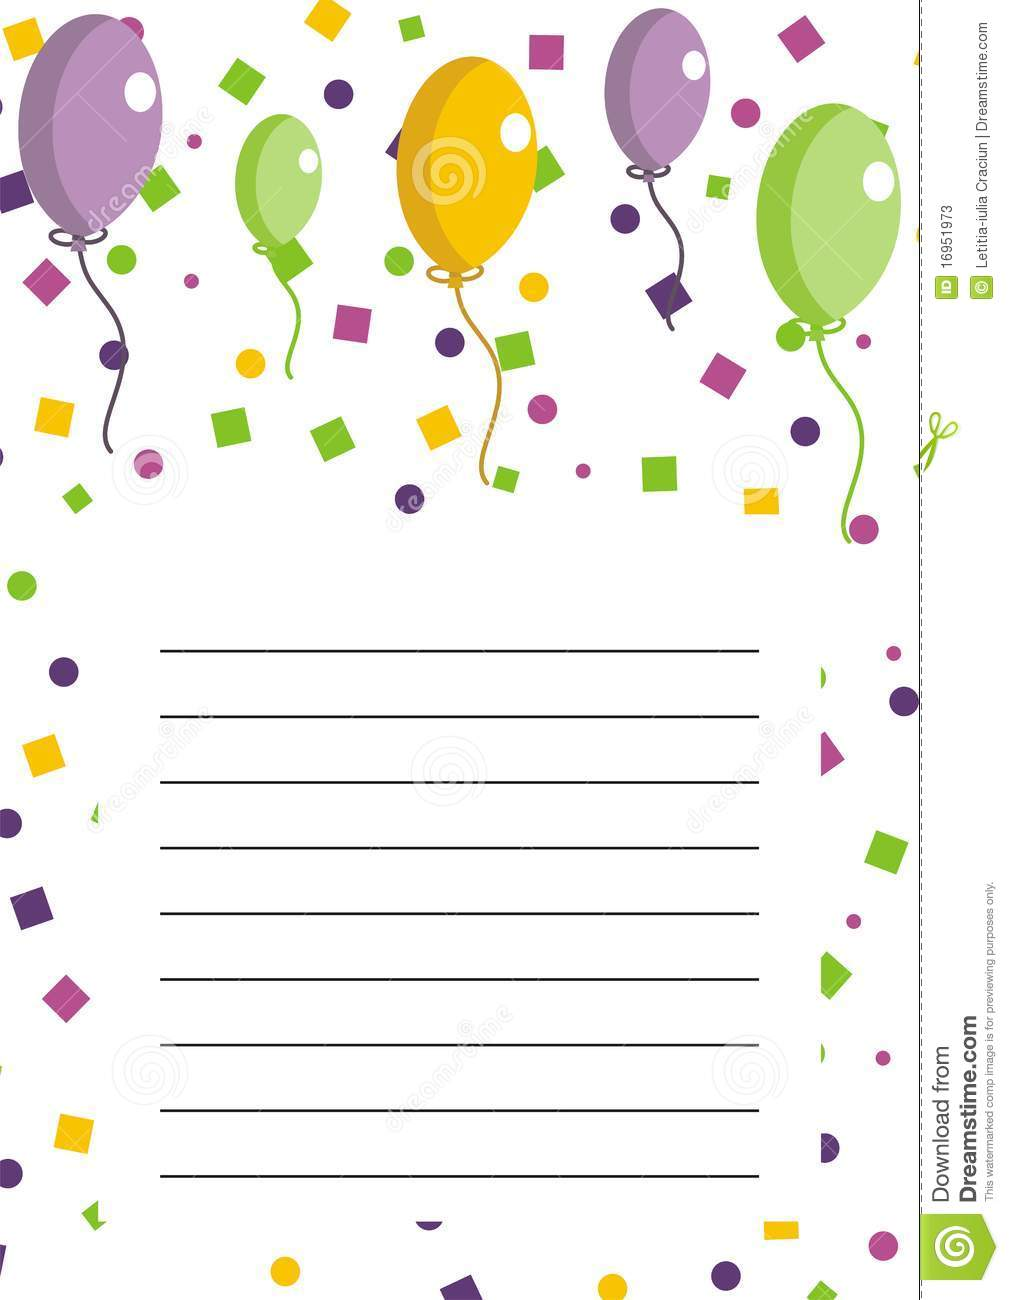 Party Invitation With Balloons Stock Vector - Image: 16951973